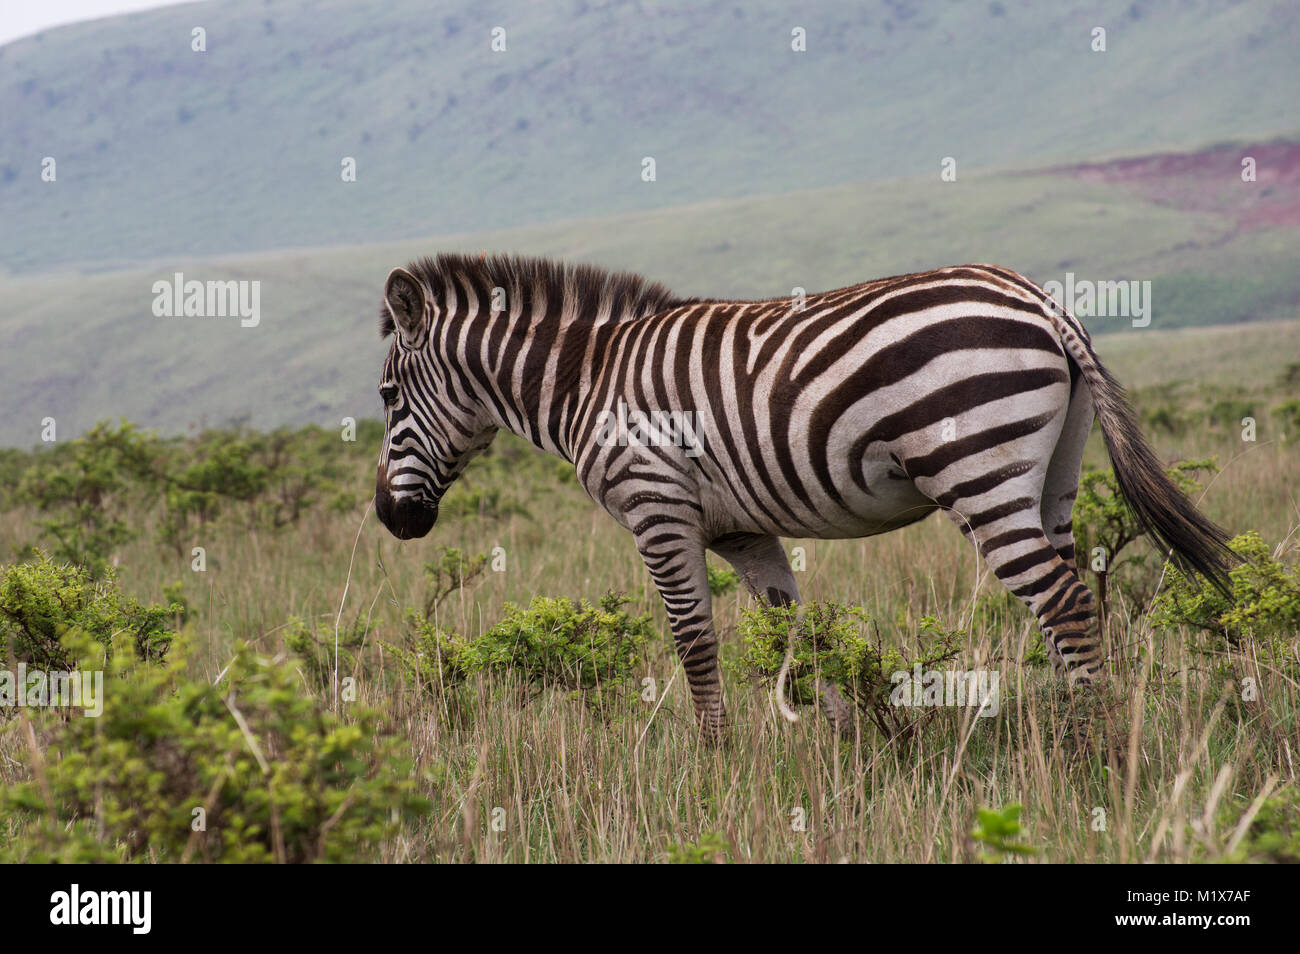 Lone zebra grazing in the grass on the plain of the Serengeti National Park in Arush, Tanzania on a safari through - Stock Image